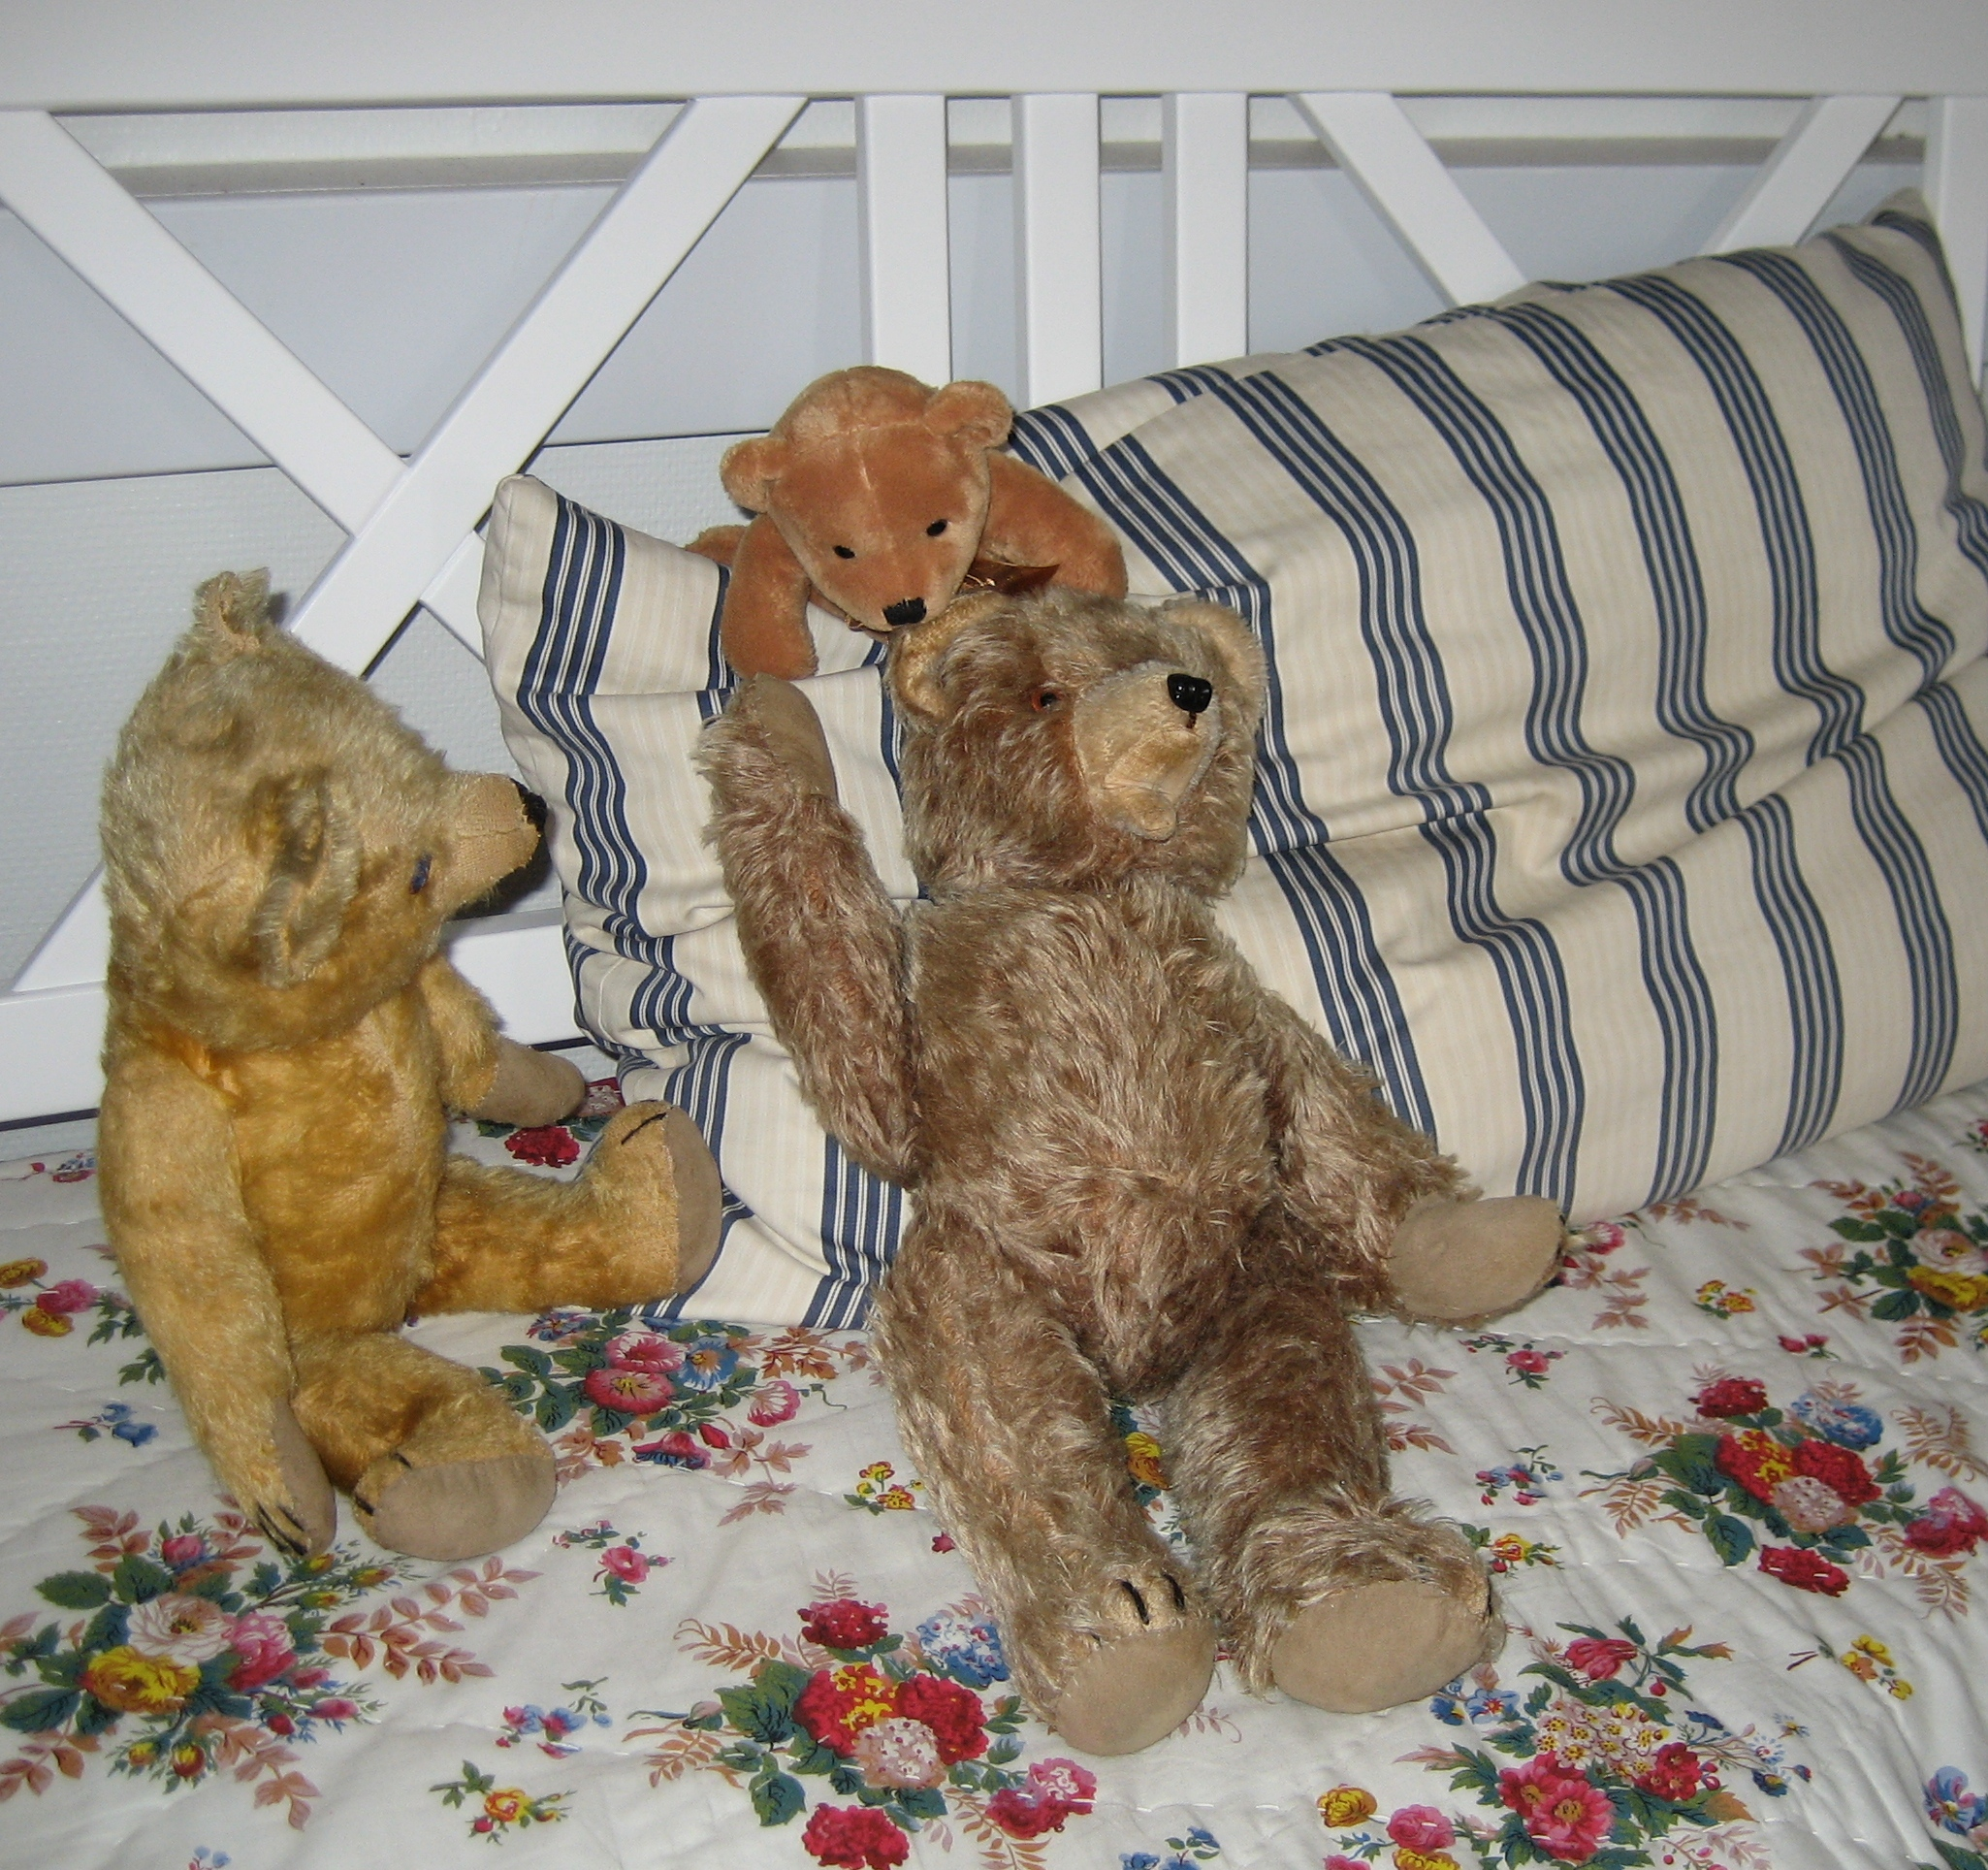 The Teddies make themselves comfy at the Teddy Hotel